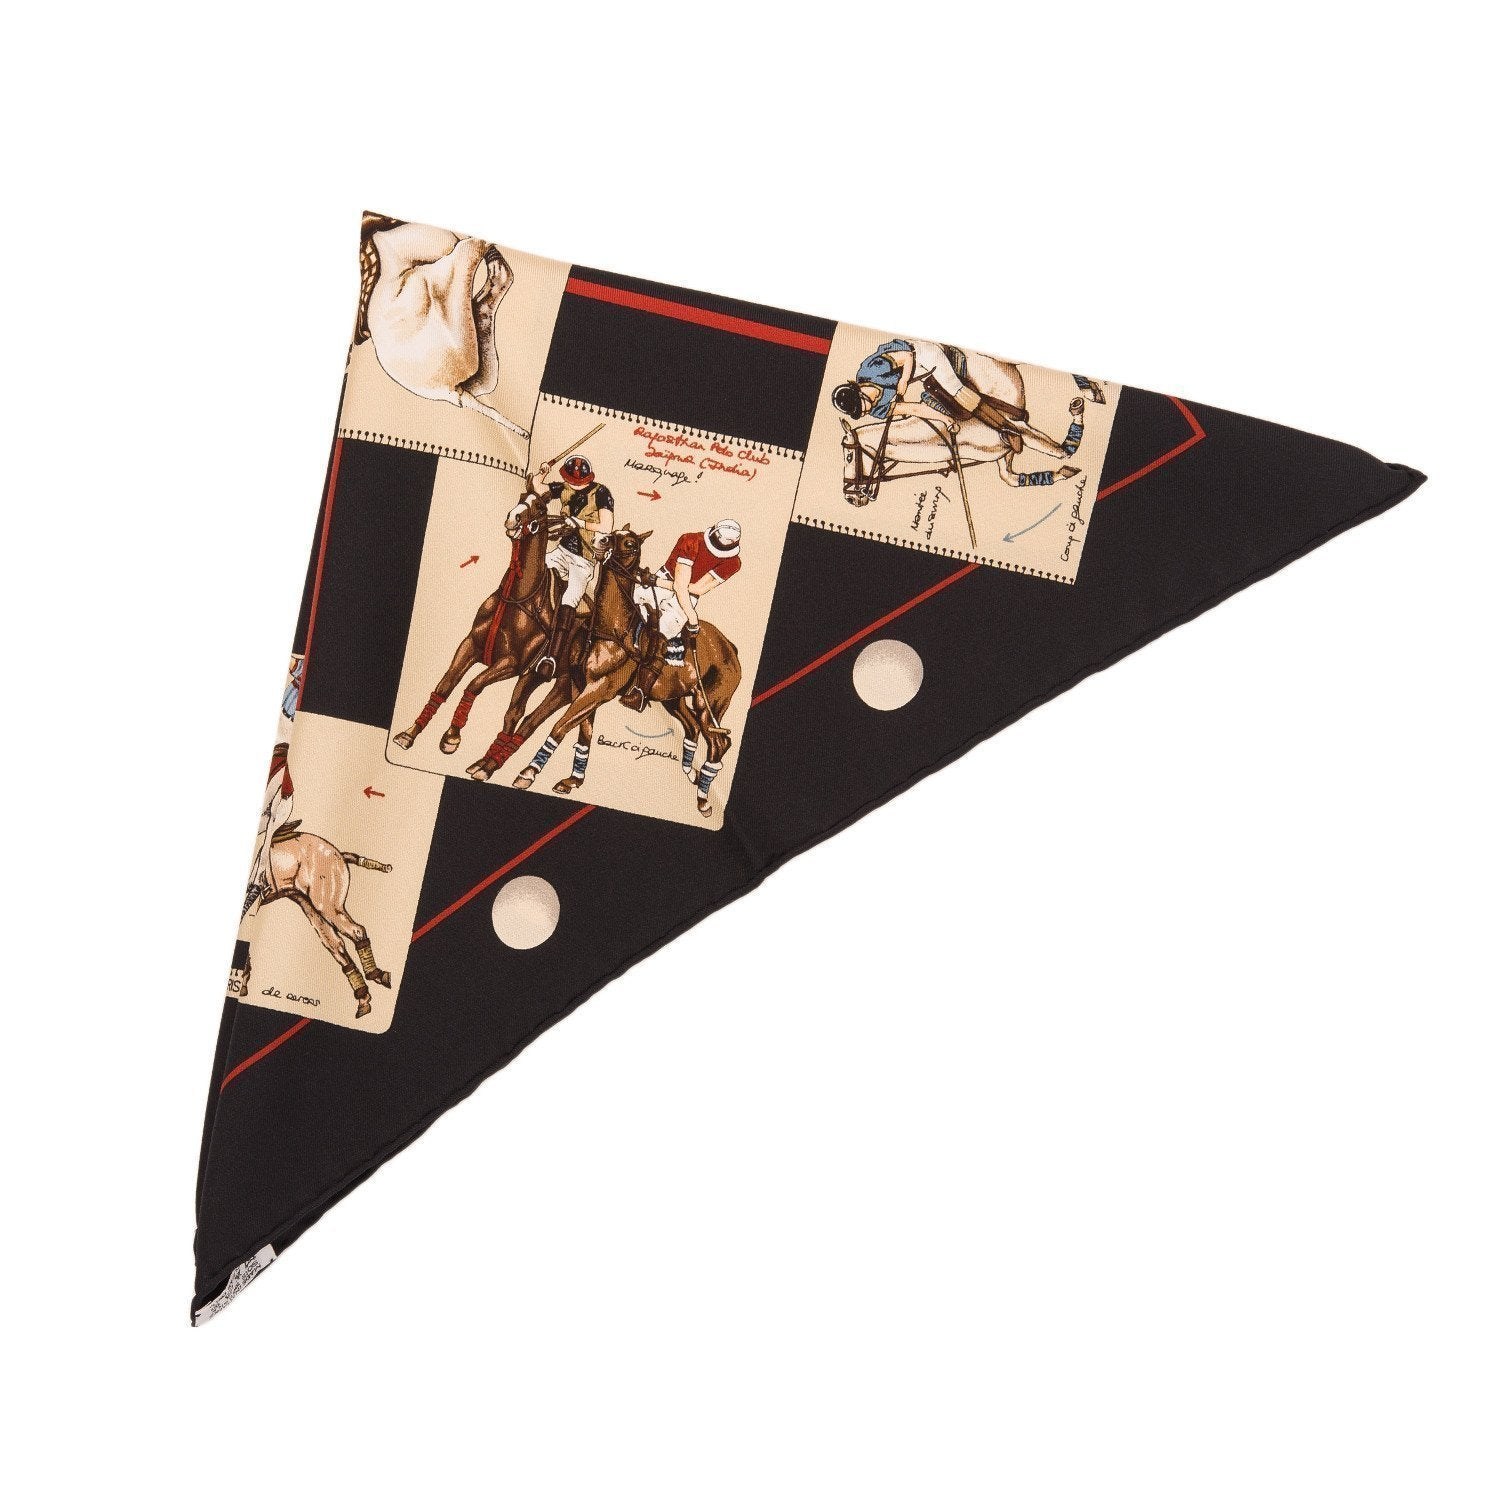 Hermes Le Monde Du Polo Silk Twill Pocket Square Scarf 45Cm Scarves